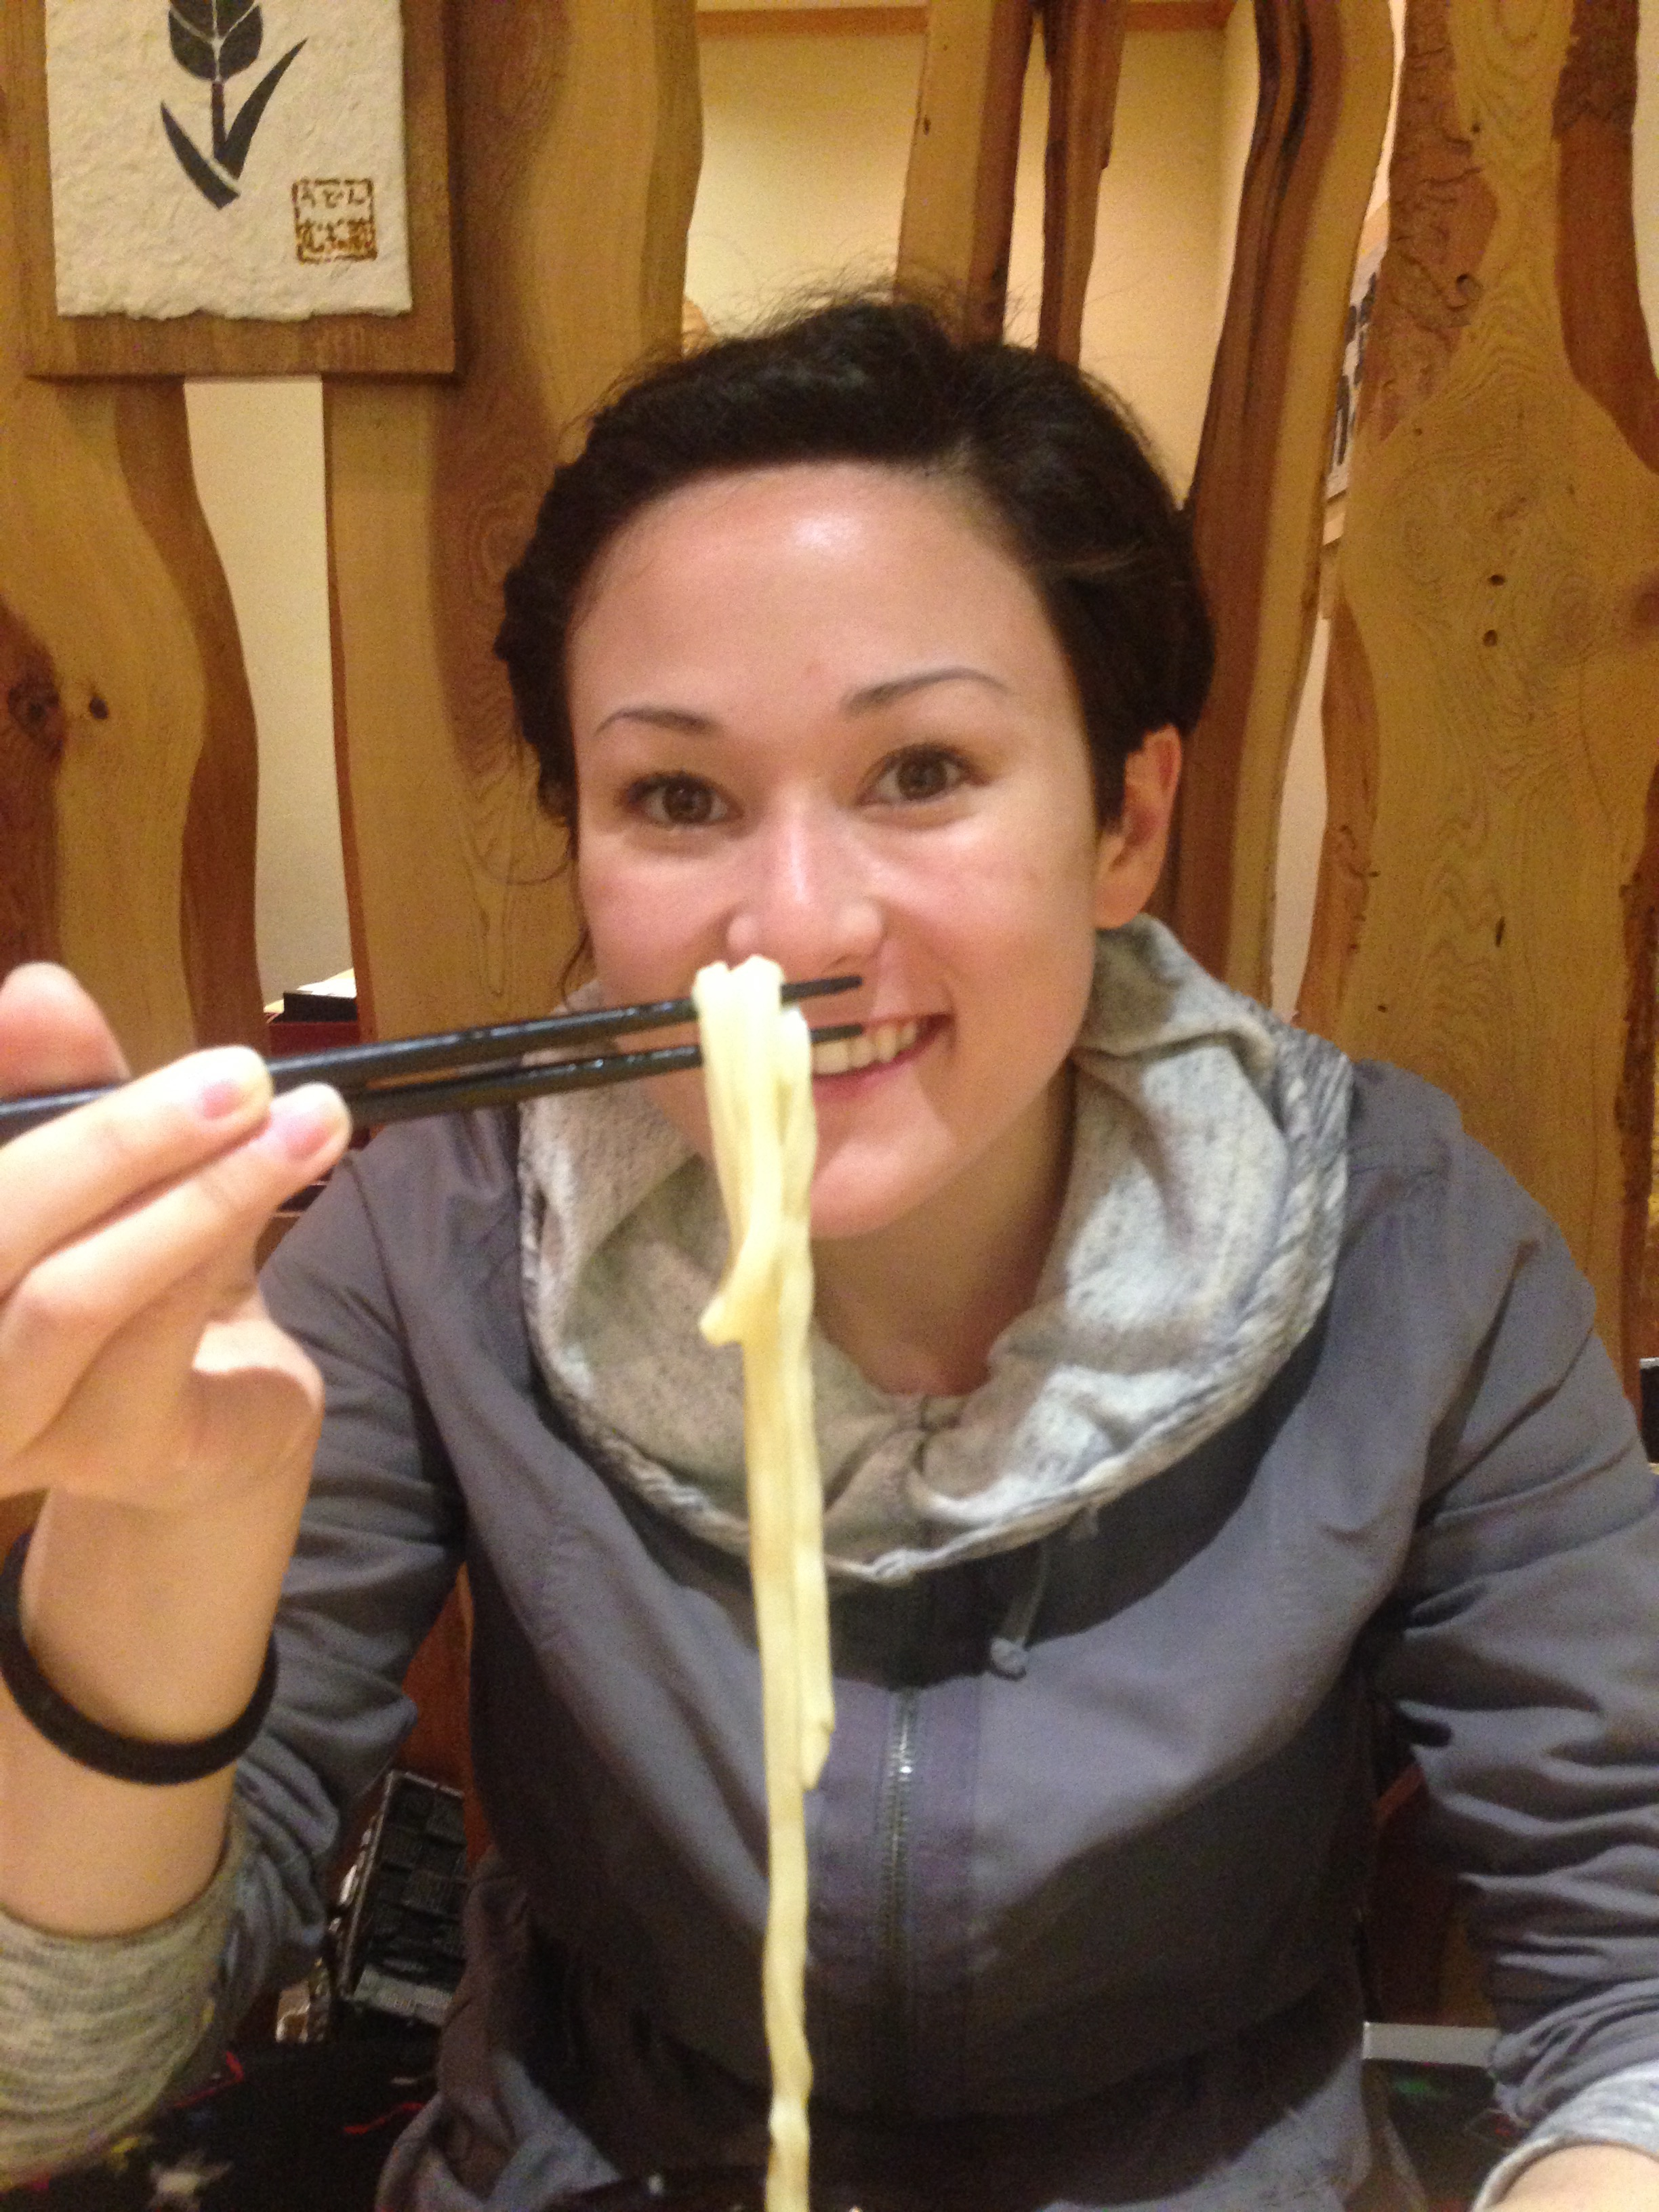 Me and my udon! Delicious!